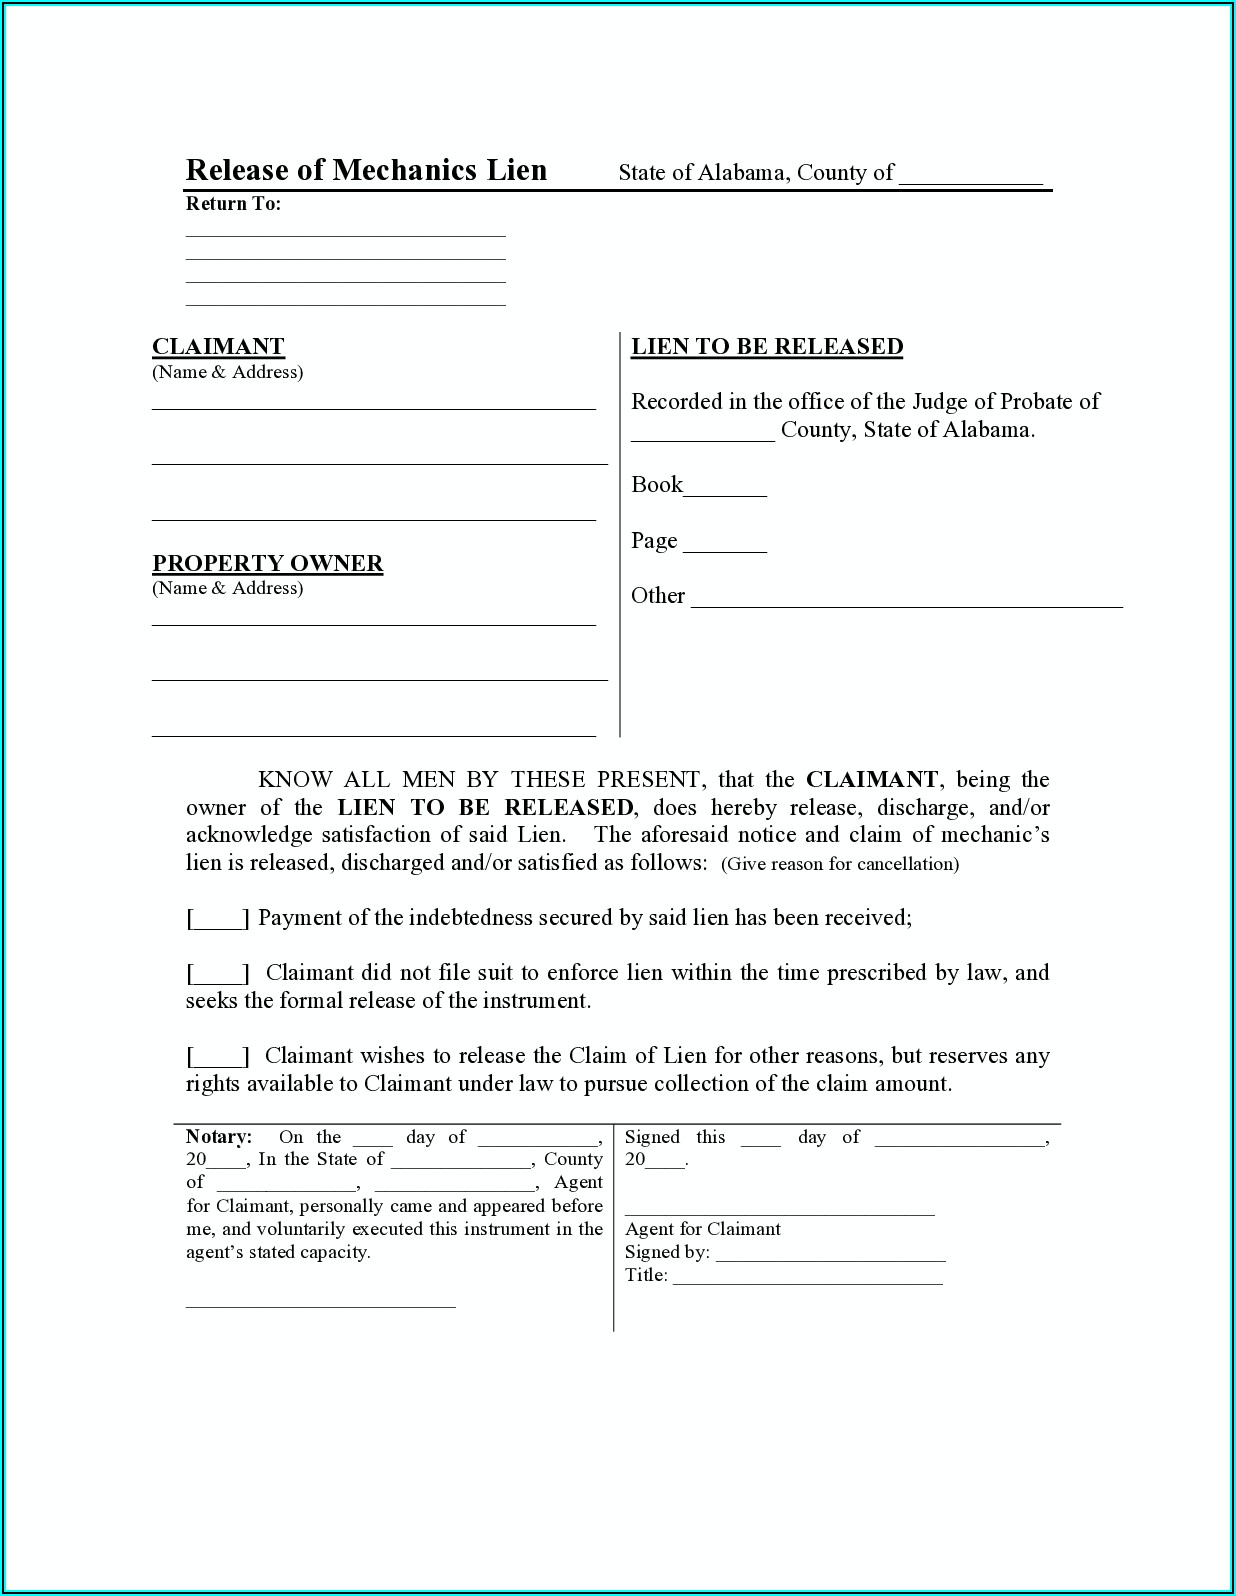 Alabama Release Of Mechanic's Lien Form